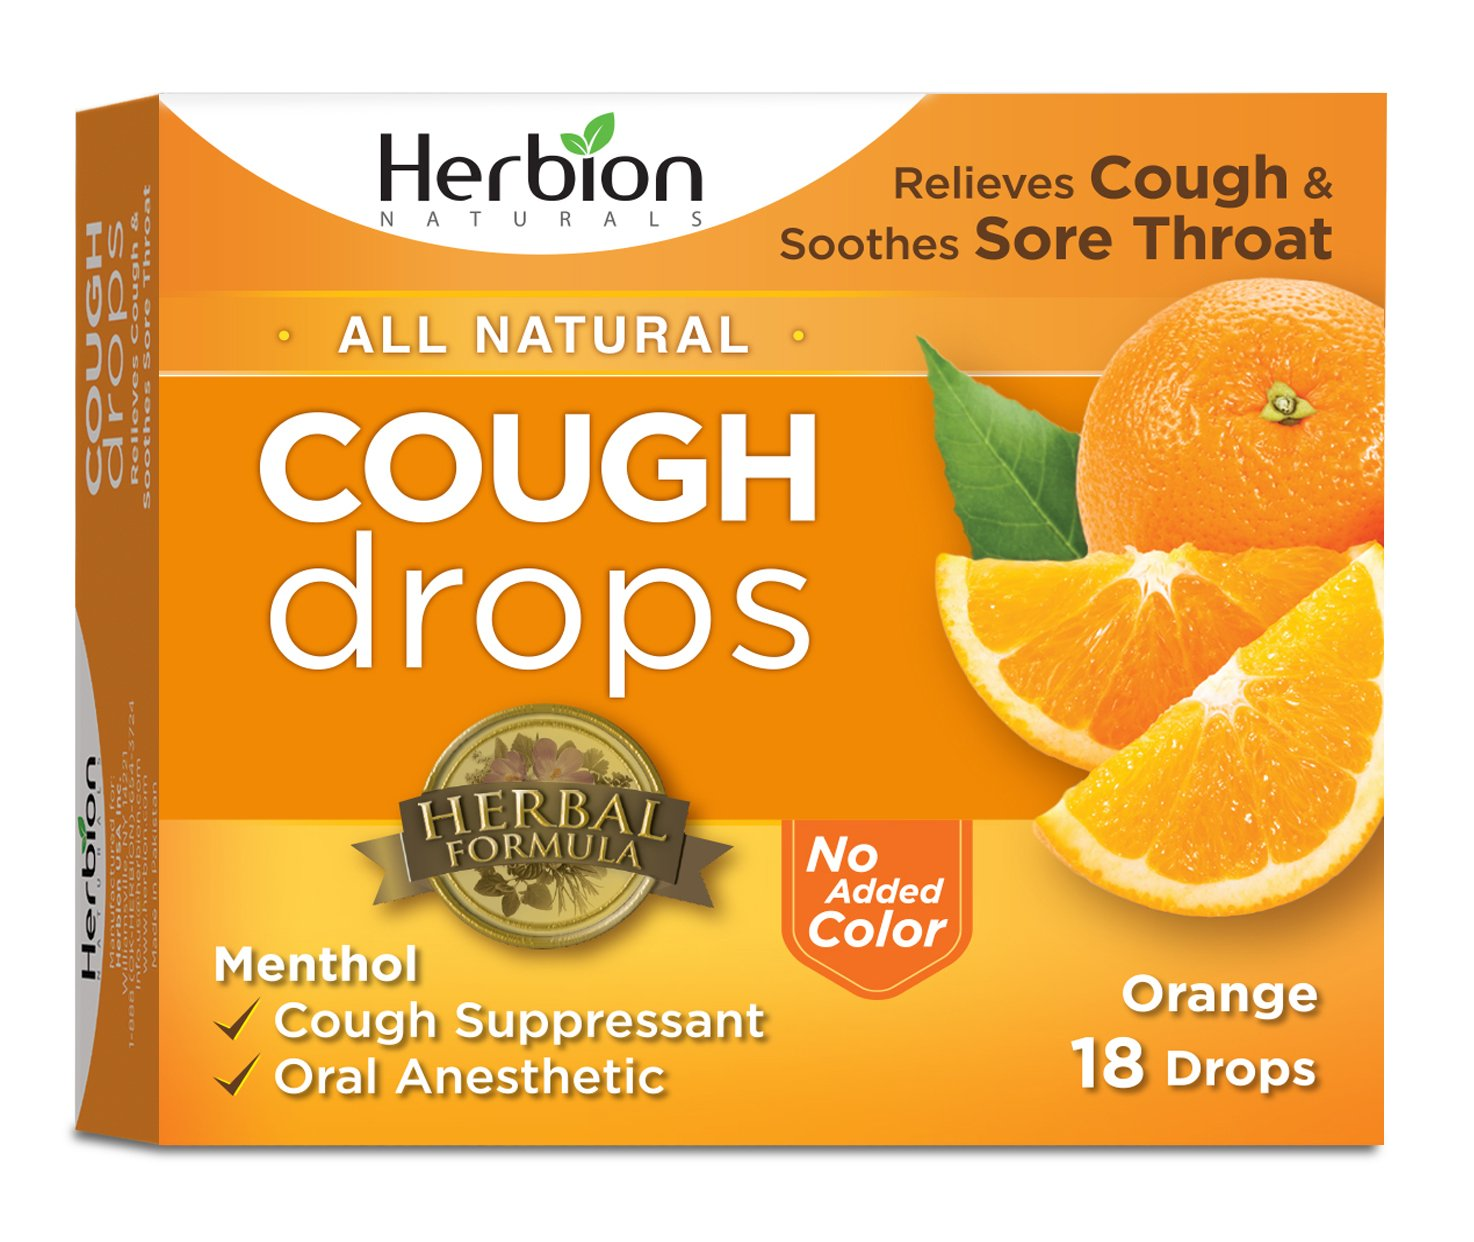 Herbion Naturals Cough Drops with Natural Orange Flavor, 18 Drops, Oral Anesthetic - Relieves Cough, Throat, Bronchial Irritation, Soothes Sore Mouth, For Adults and Children